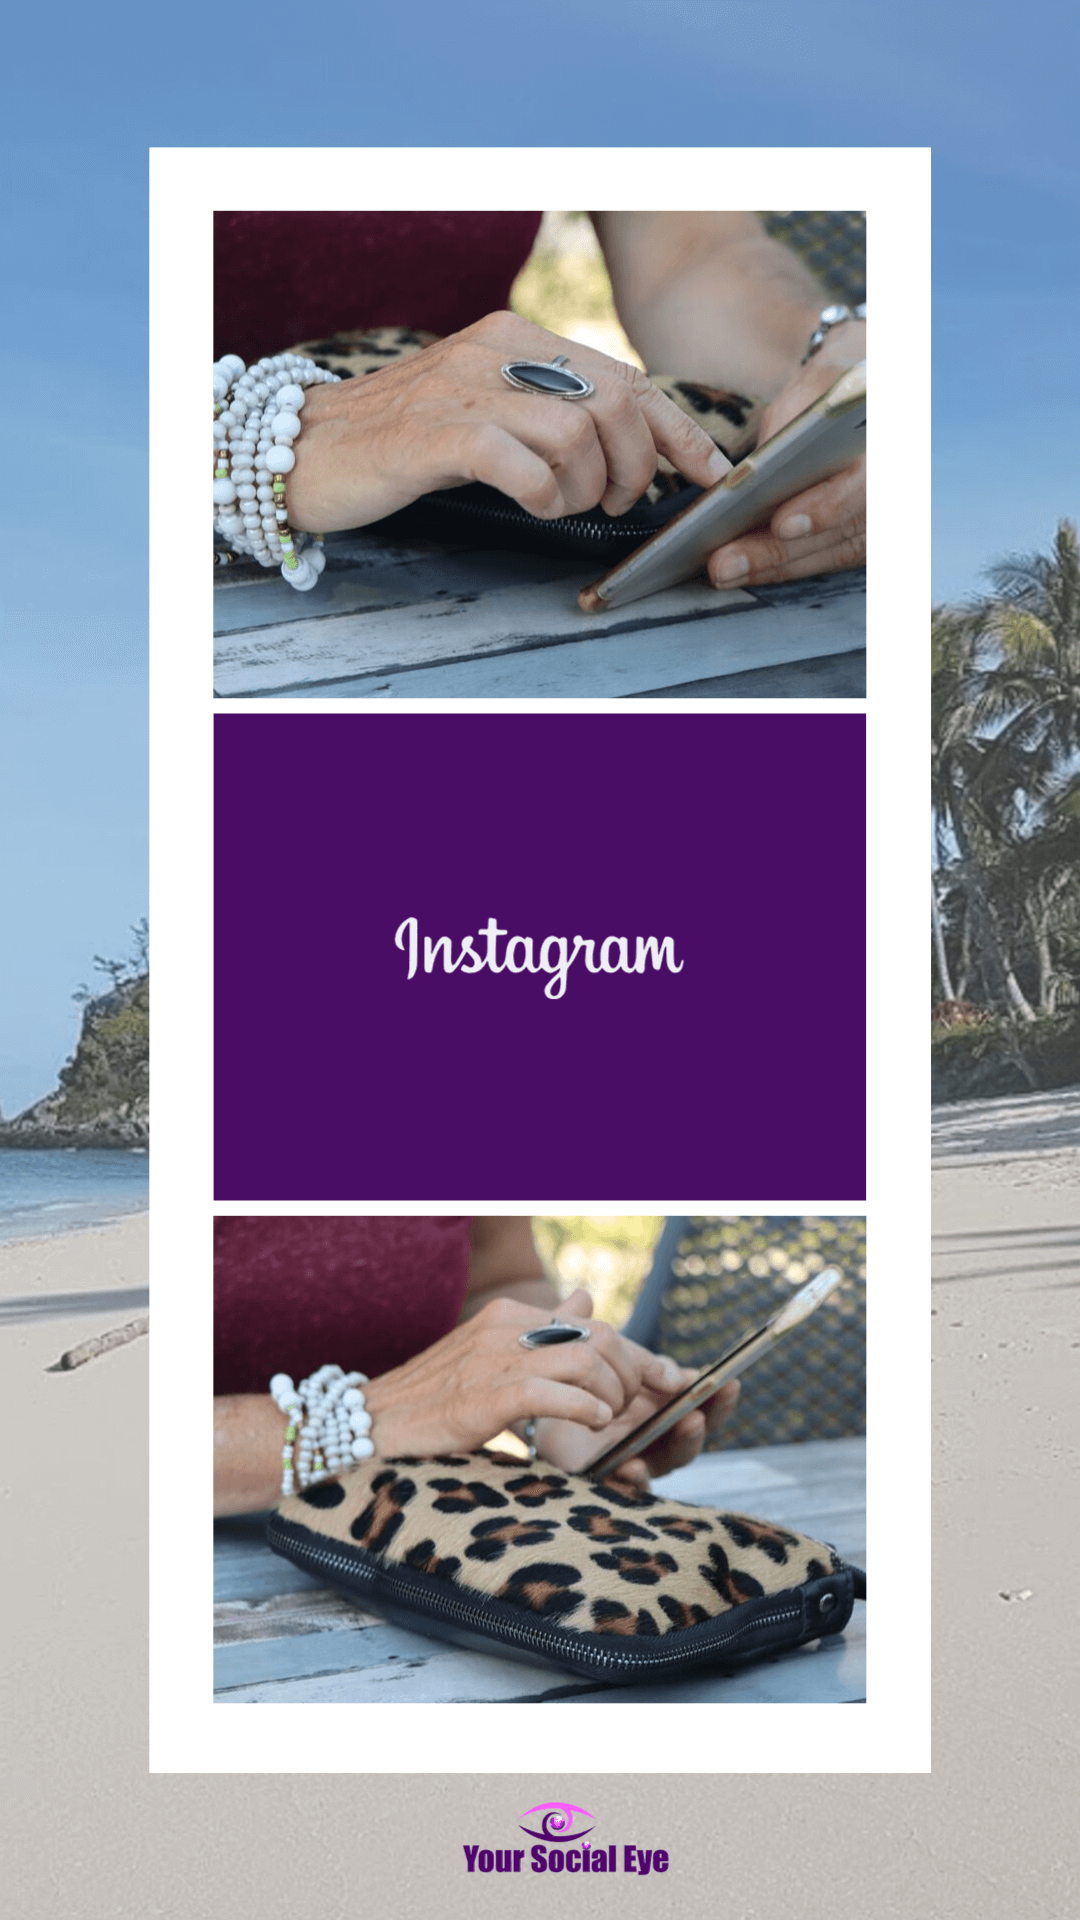 Instagram interesse